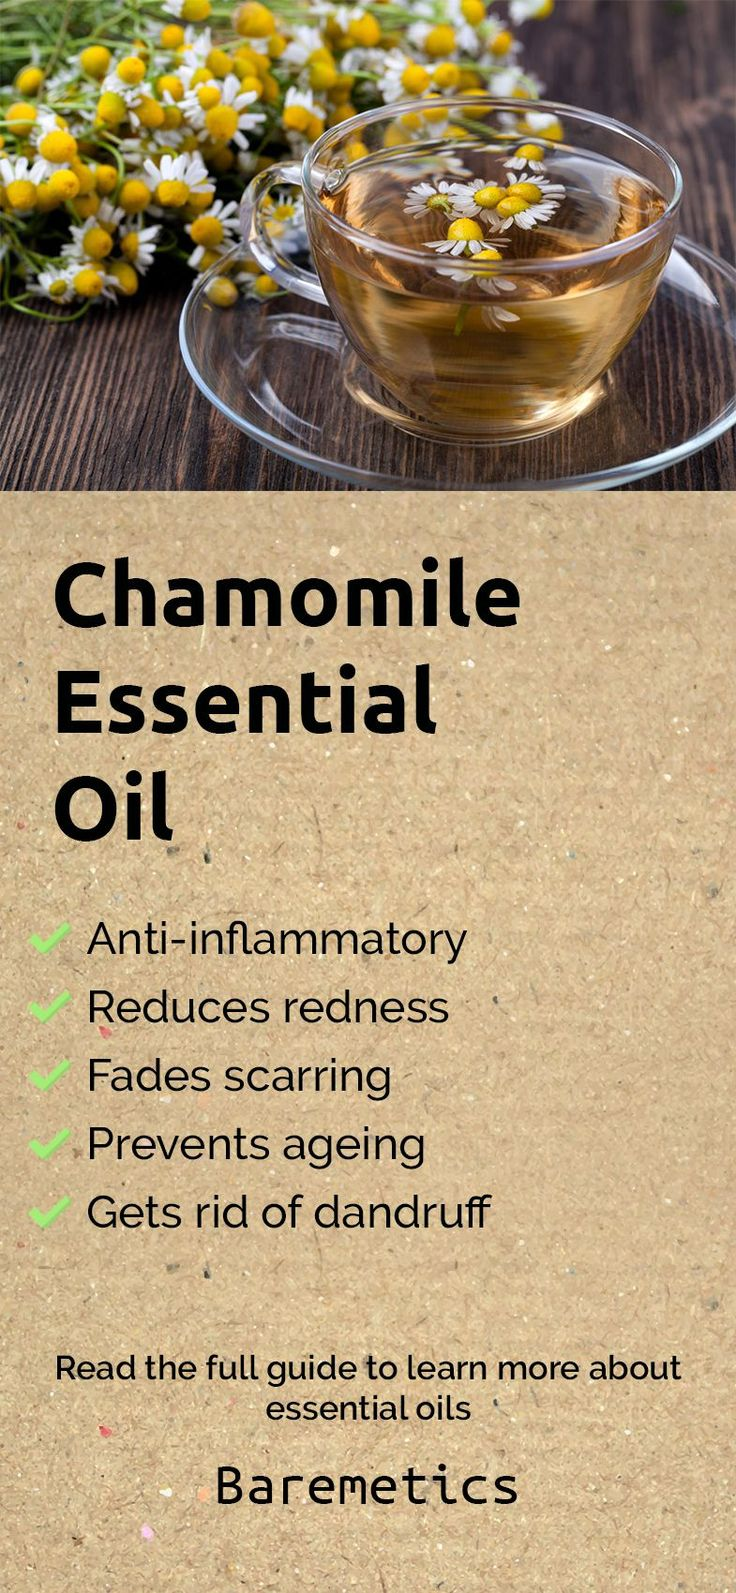 Chamomile oil helps with acne by reducing redness and inflammation, it soothes eczema, reduces scarring, calms rashes and evens out skin tone. To use this oil, dilute a few drops in jojoba oil (or any other plant oil) and apply it to wherever you like. If you want to know more about essential oils, click on the image!